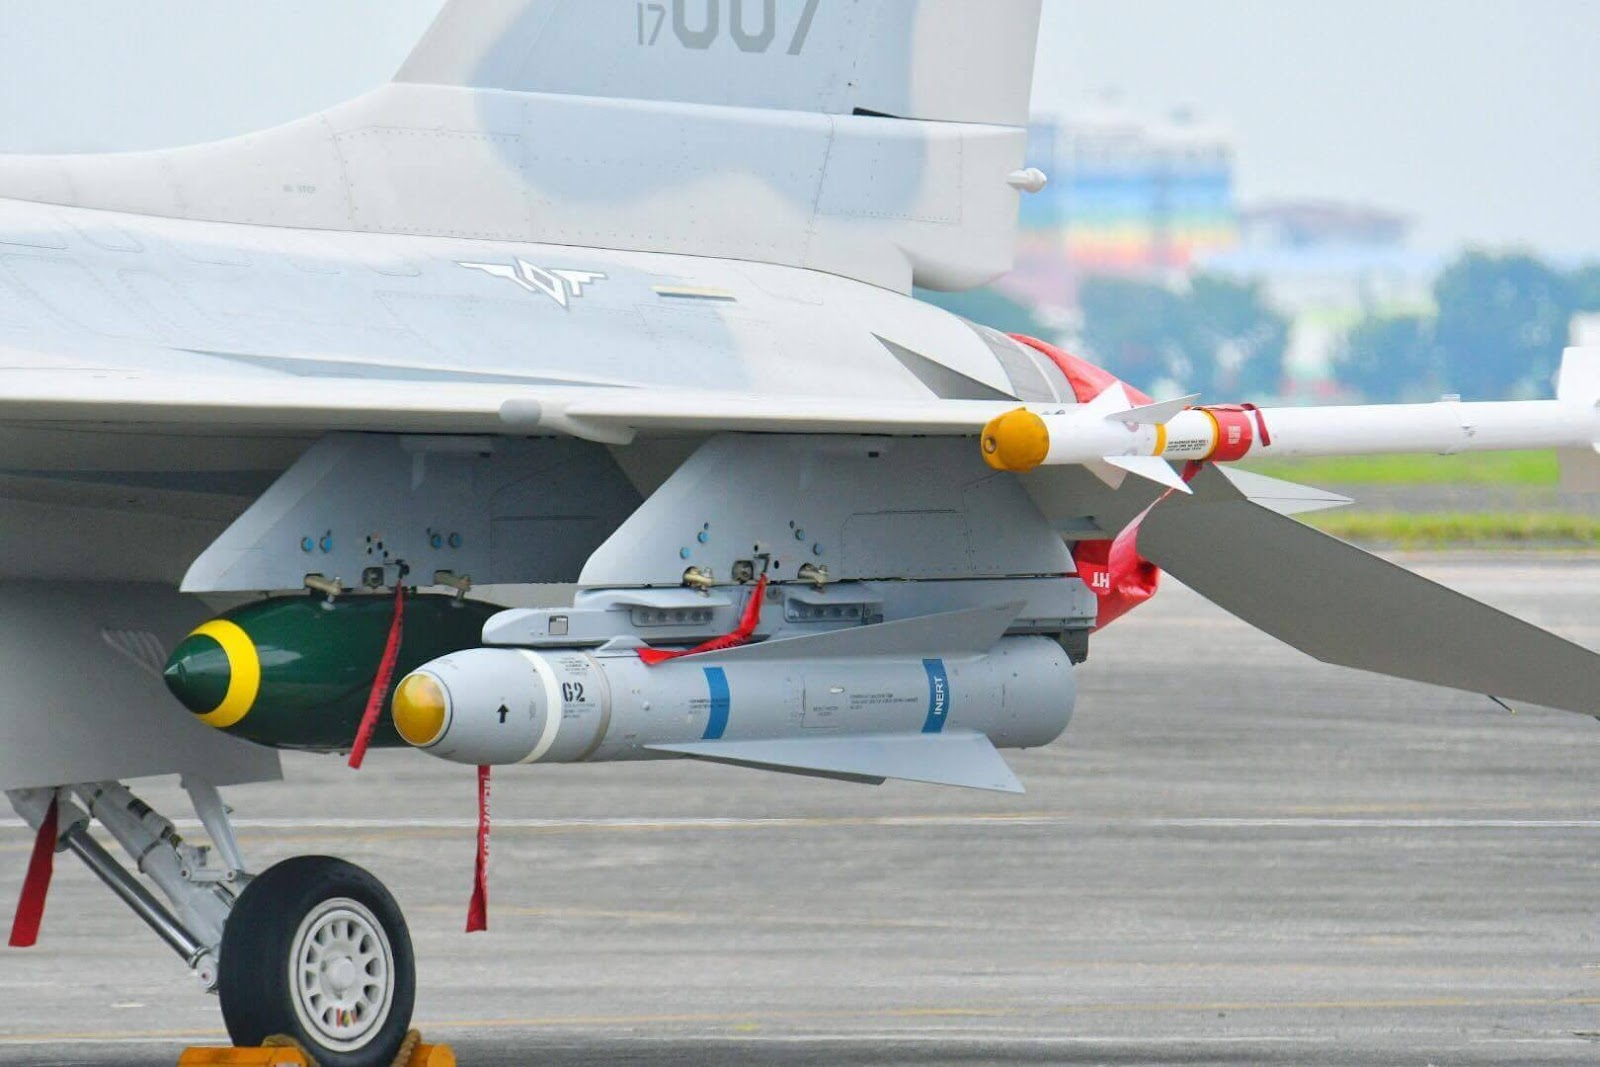 DEFENSE STUDIES: Vietnam Conducts Live Fire Exercise with